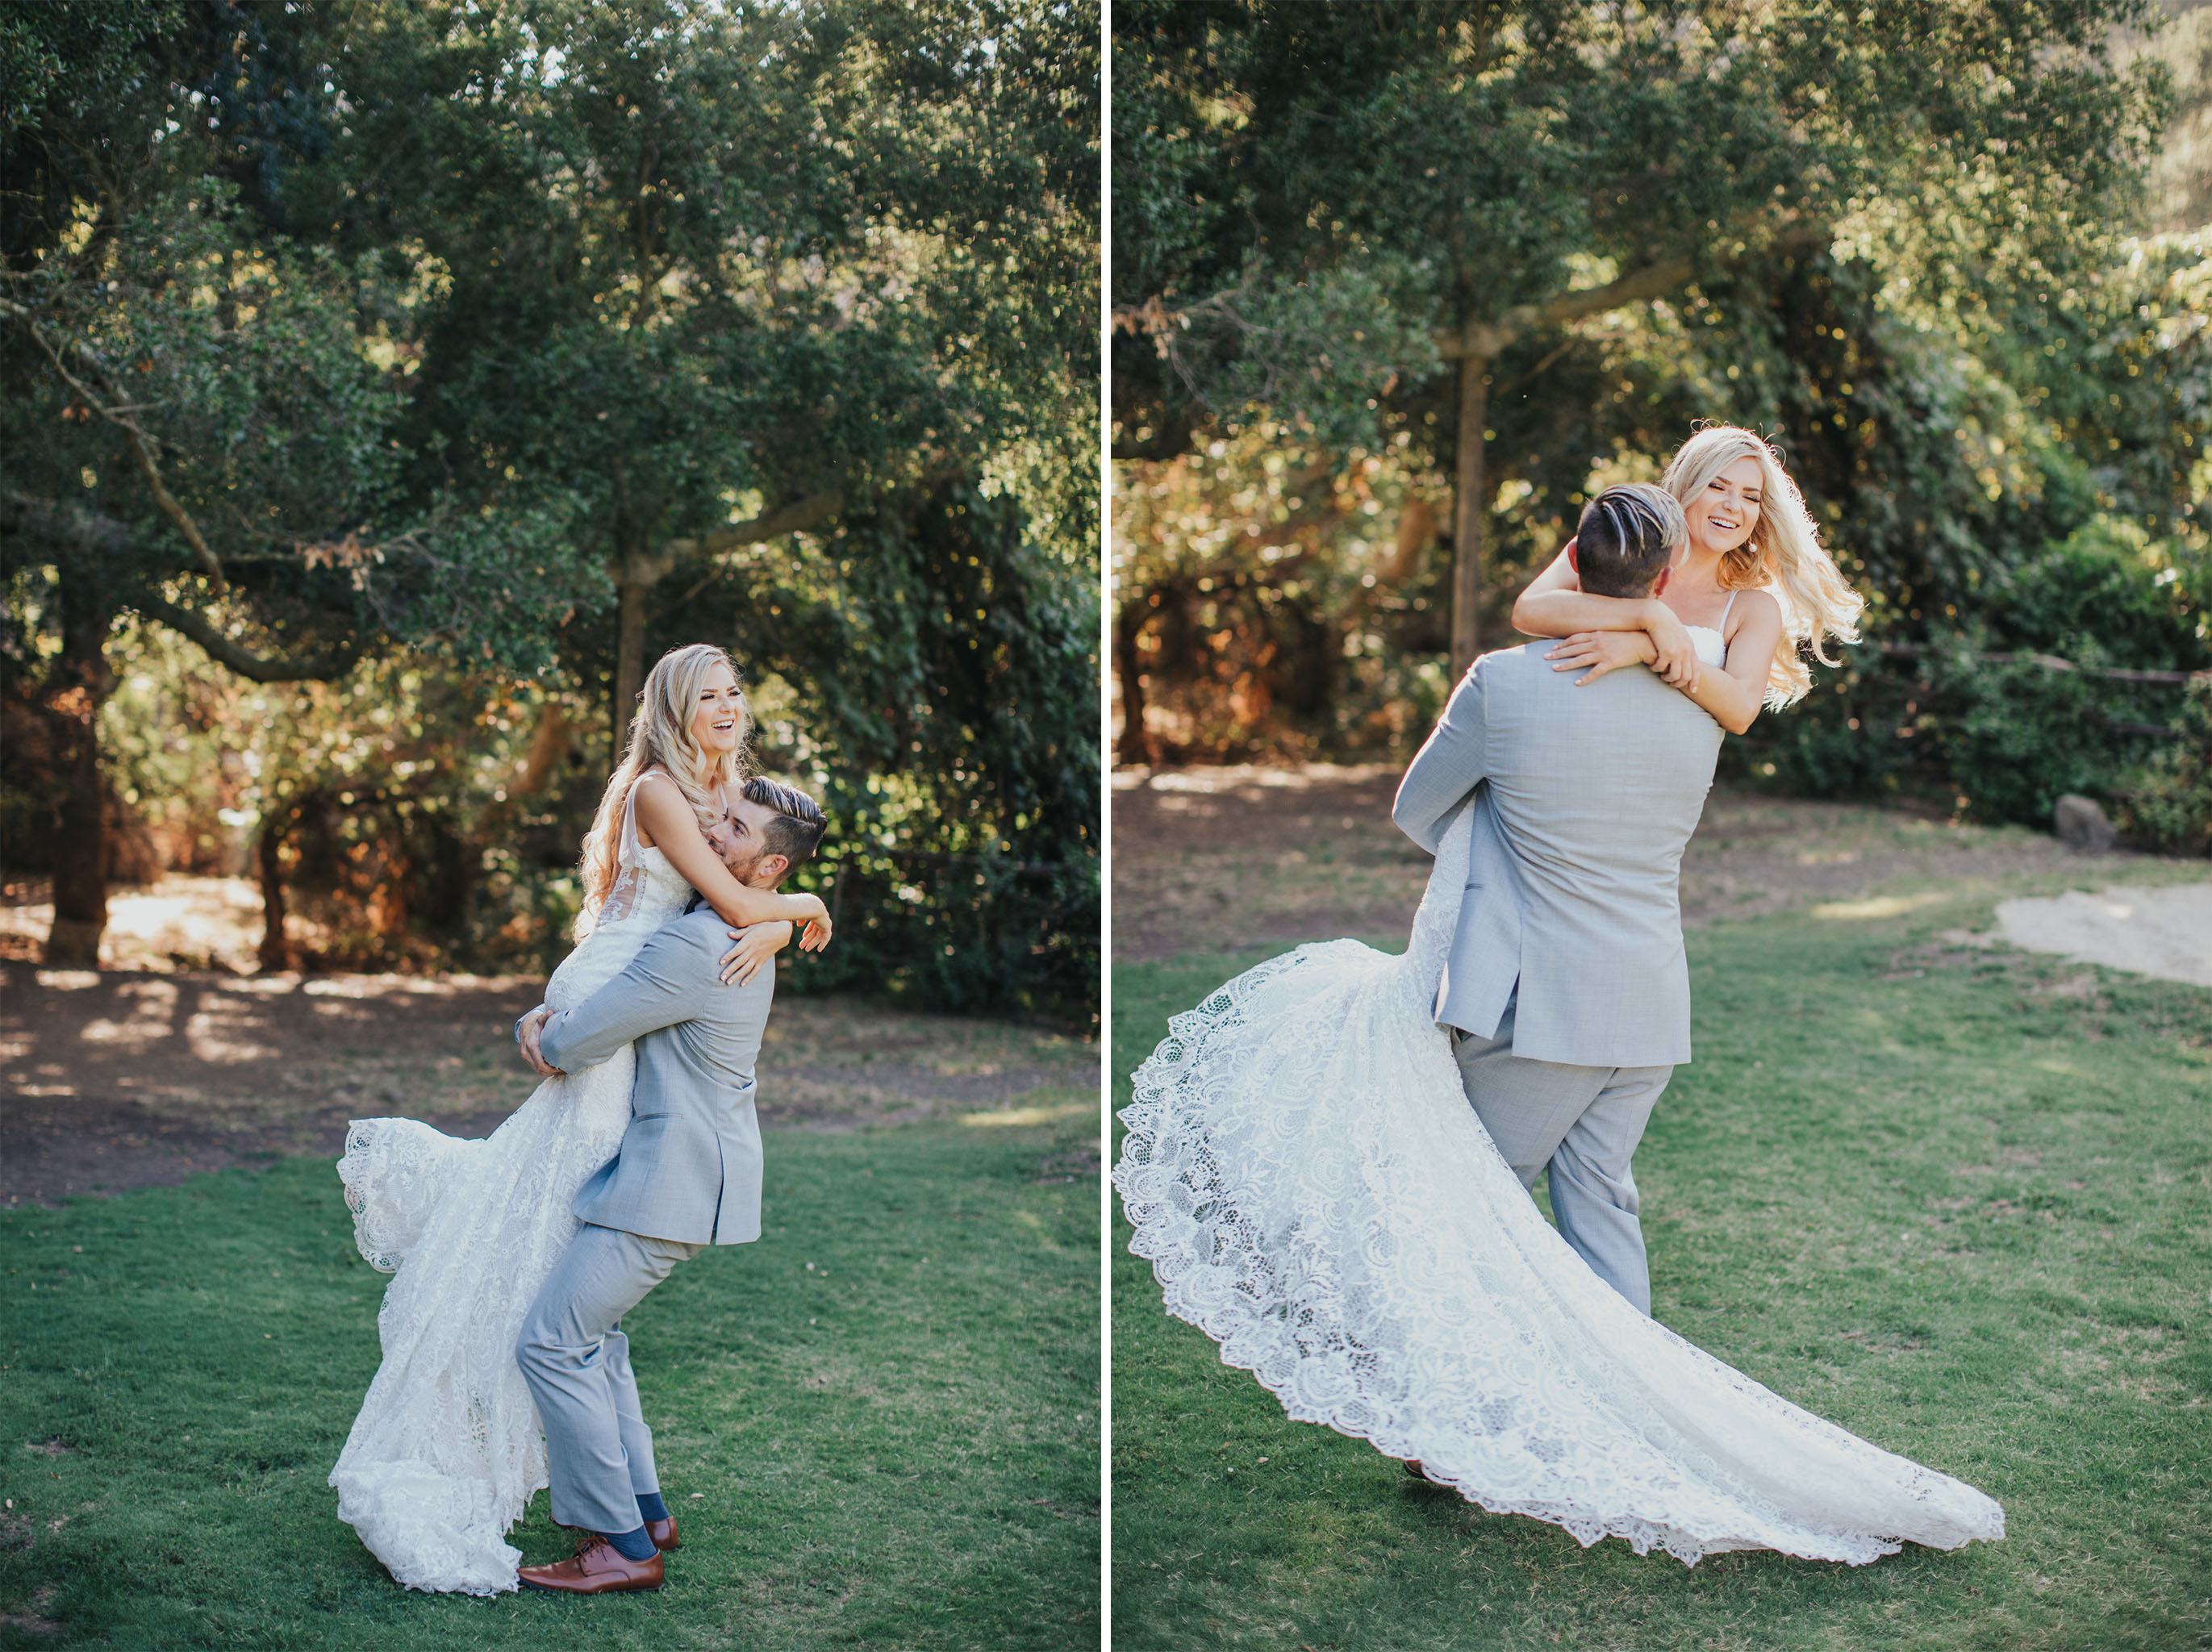 Wedding Twirl | Calamigos Ranch